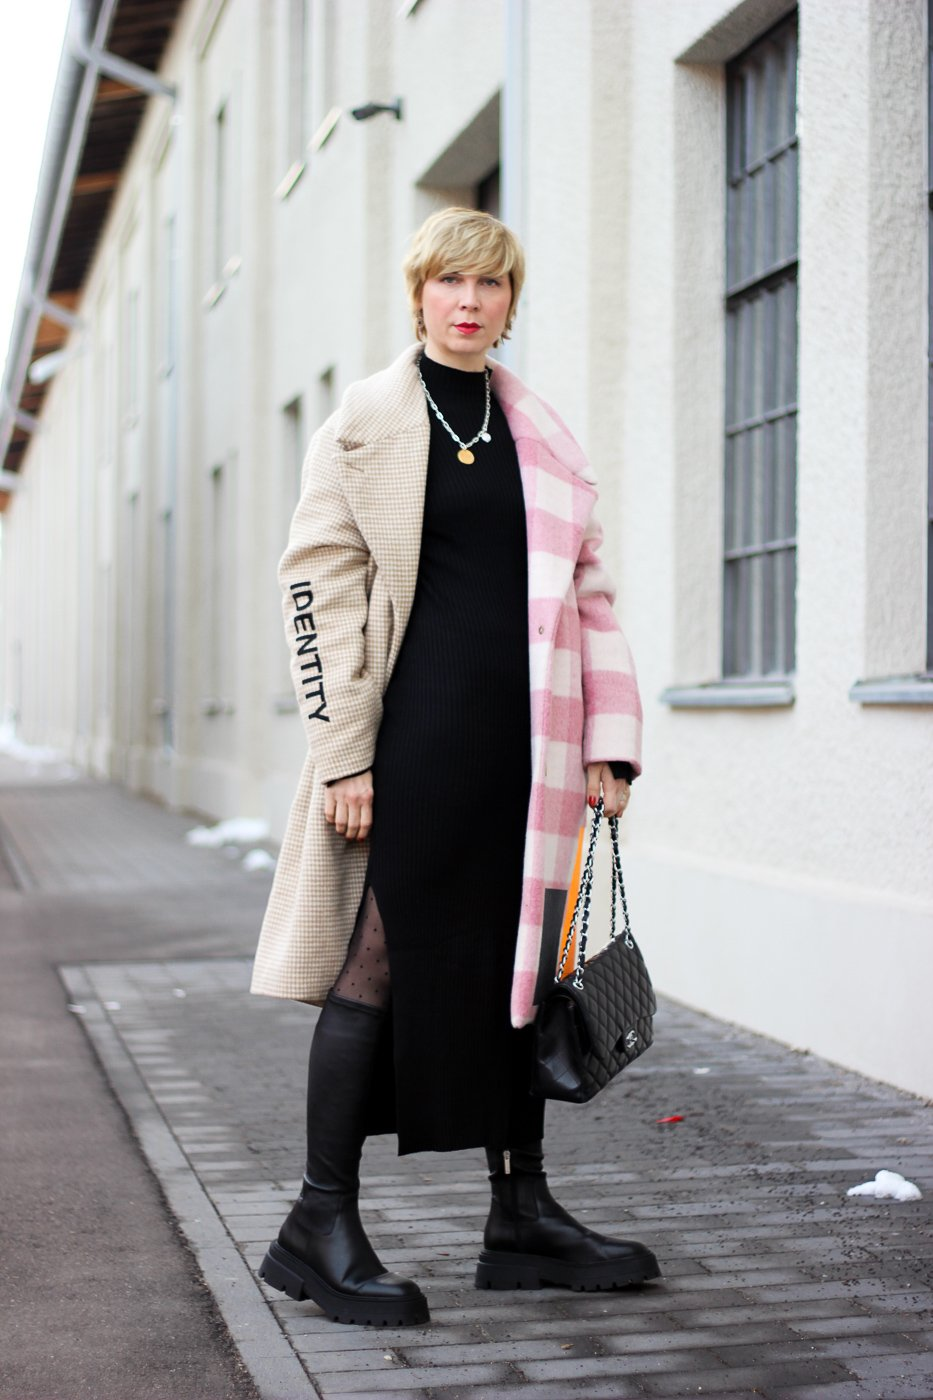 conny doll lifestyle: langer Mantel, MUF10, Winterstyling, langer Rock